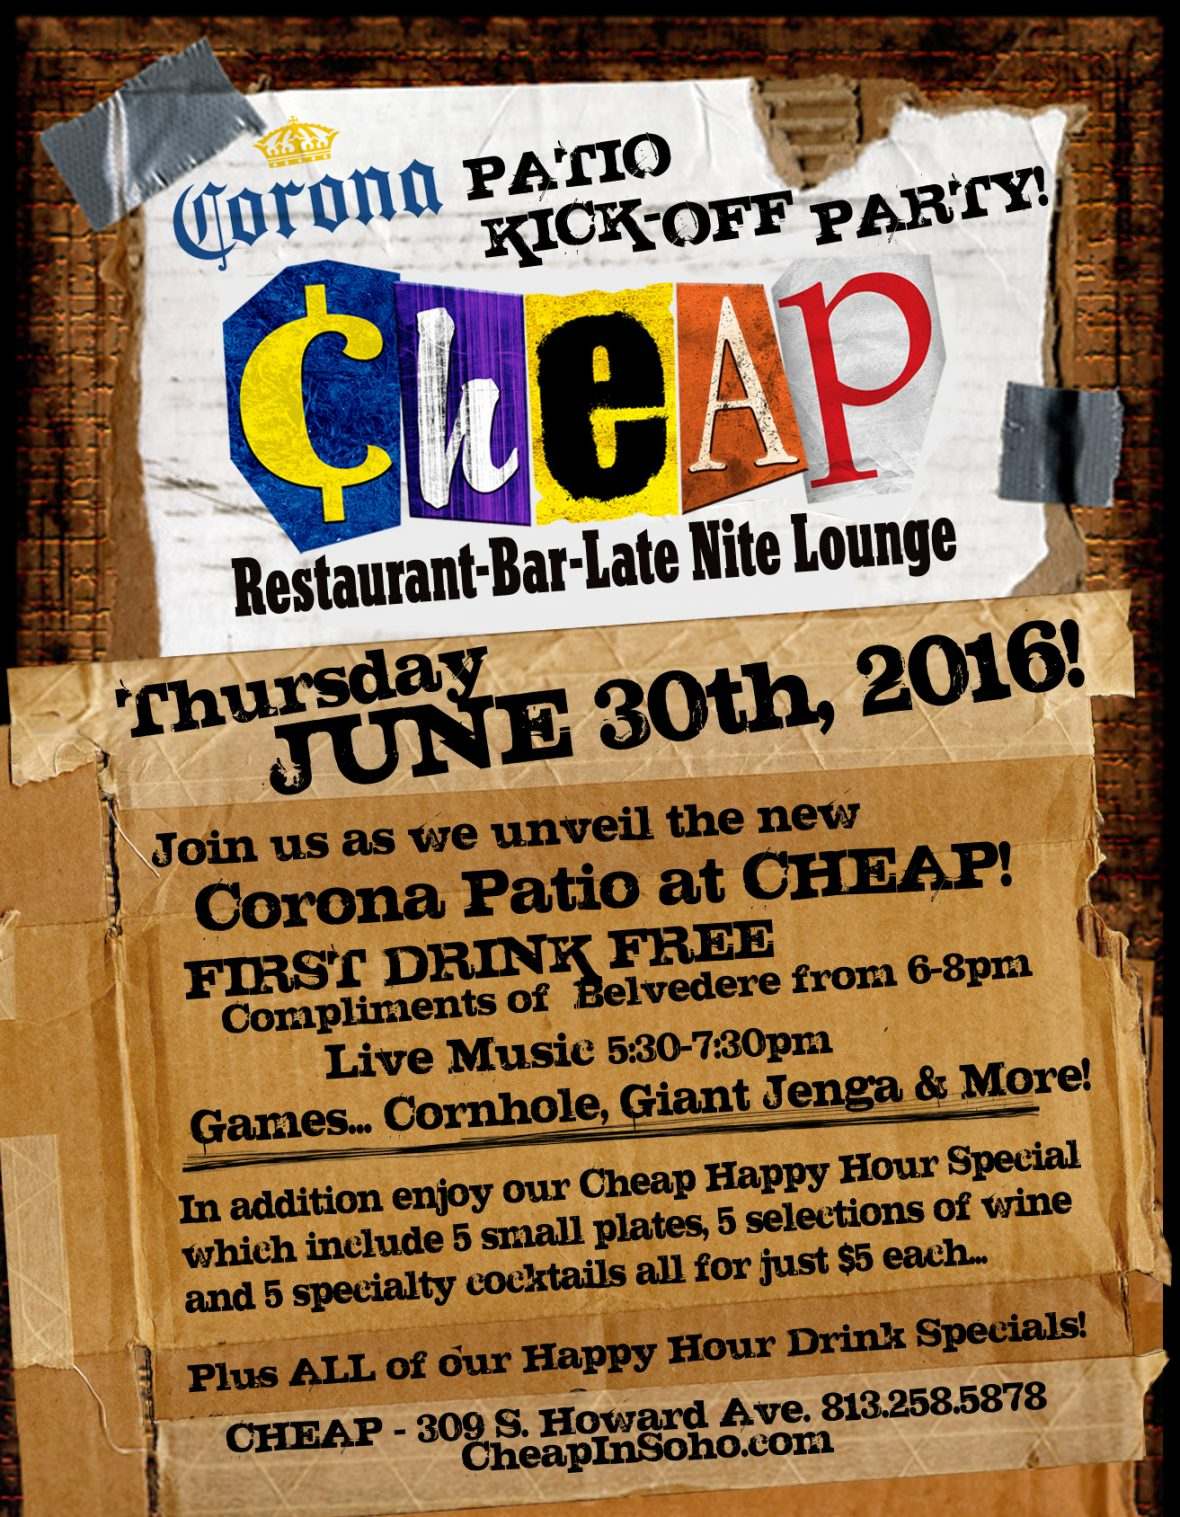 carona patio kickoff